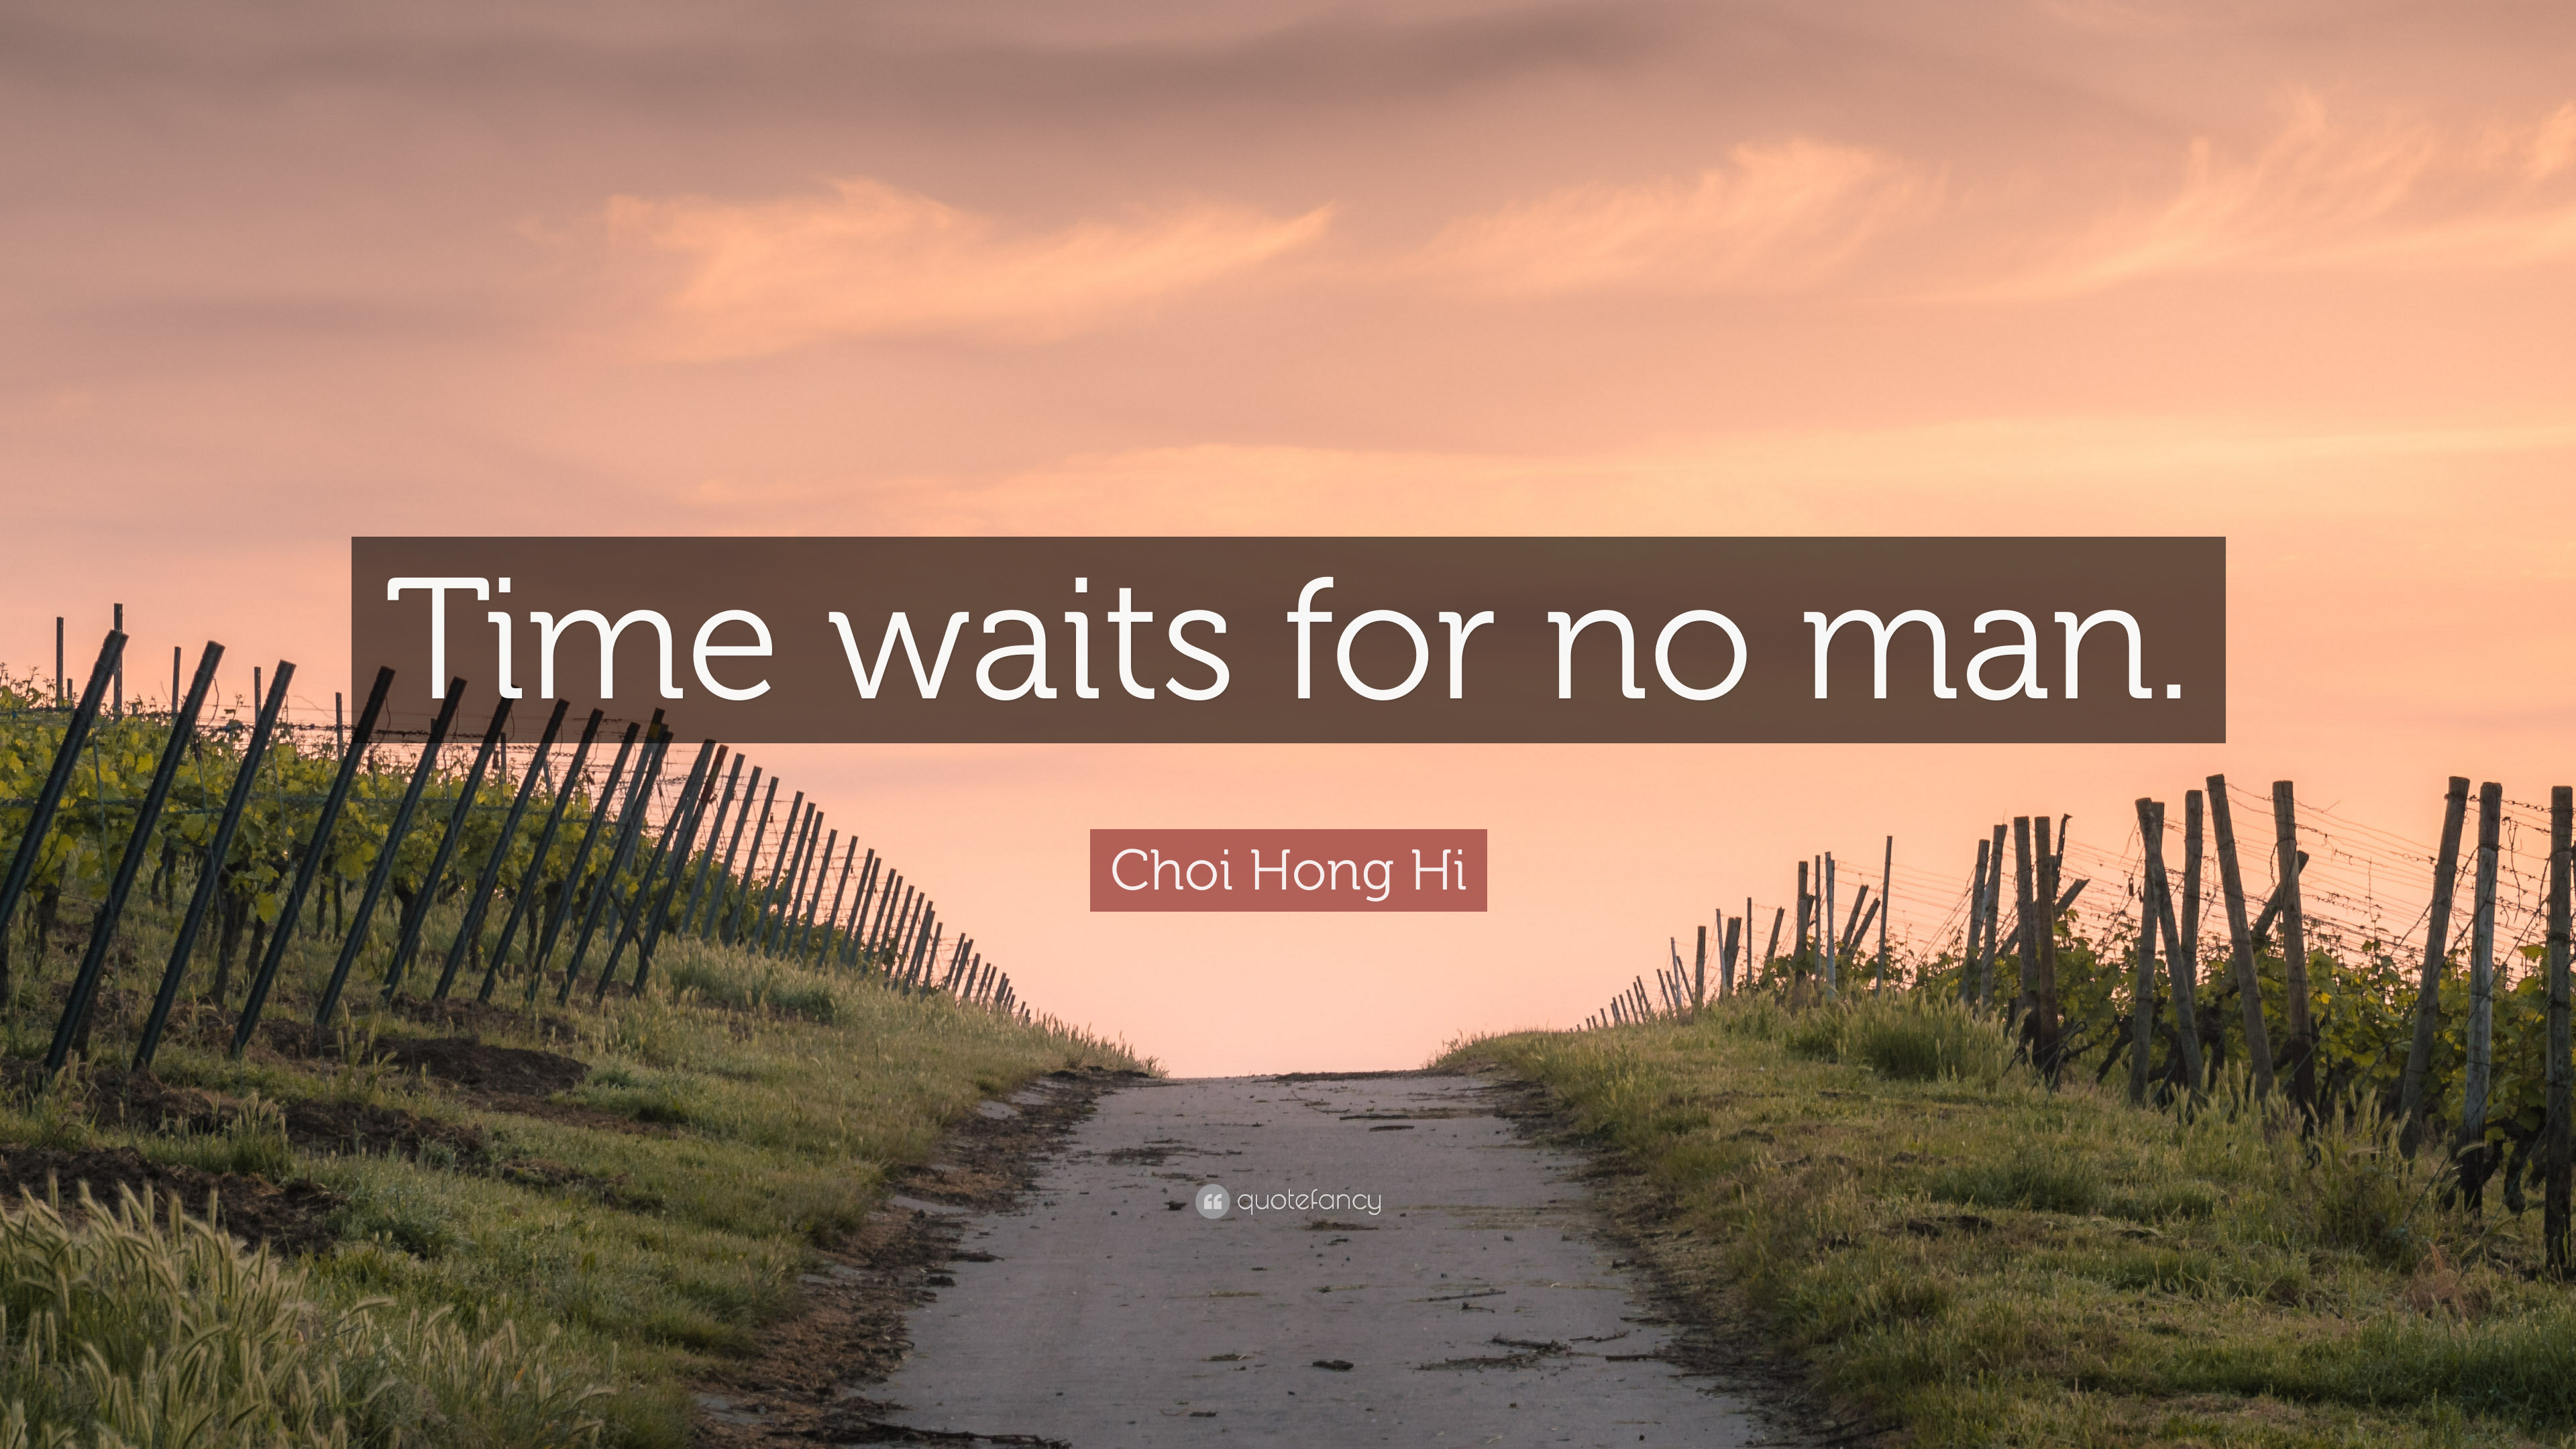 Buddha Quotes Hd Wallpapers Choi Hong Hi Quote Time Waits For No Man 9 Wallpapers